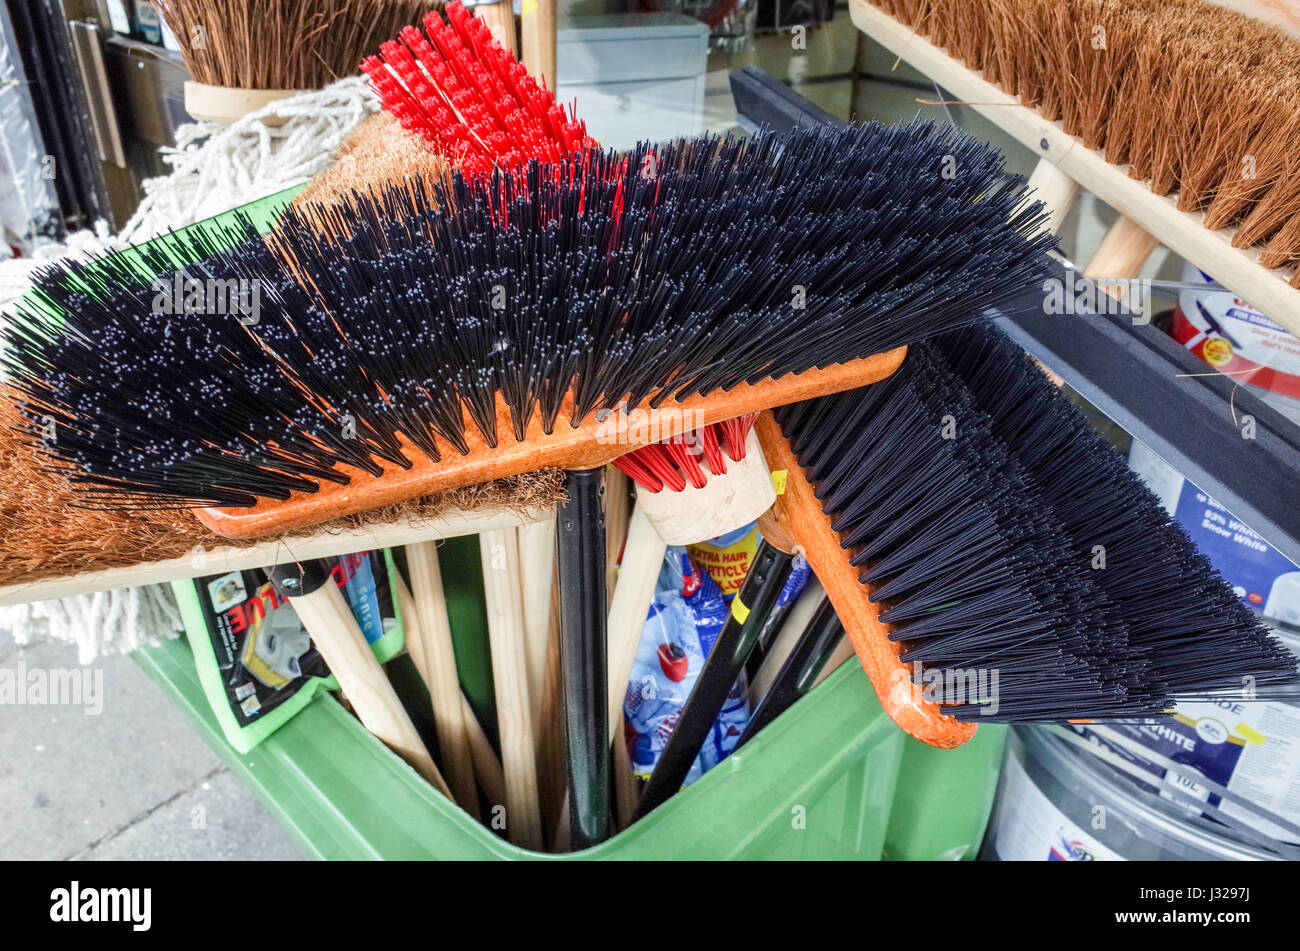 New Brooms for sale in London - Stock Image